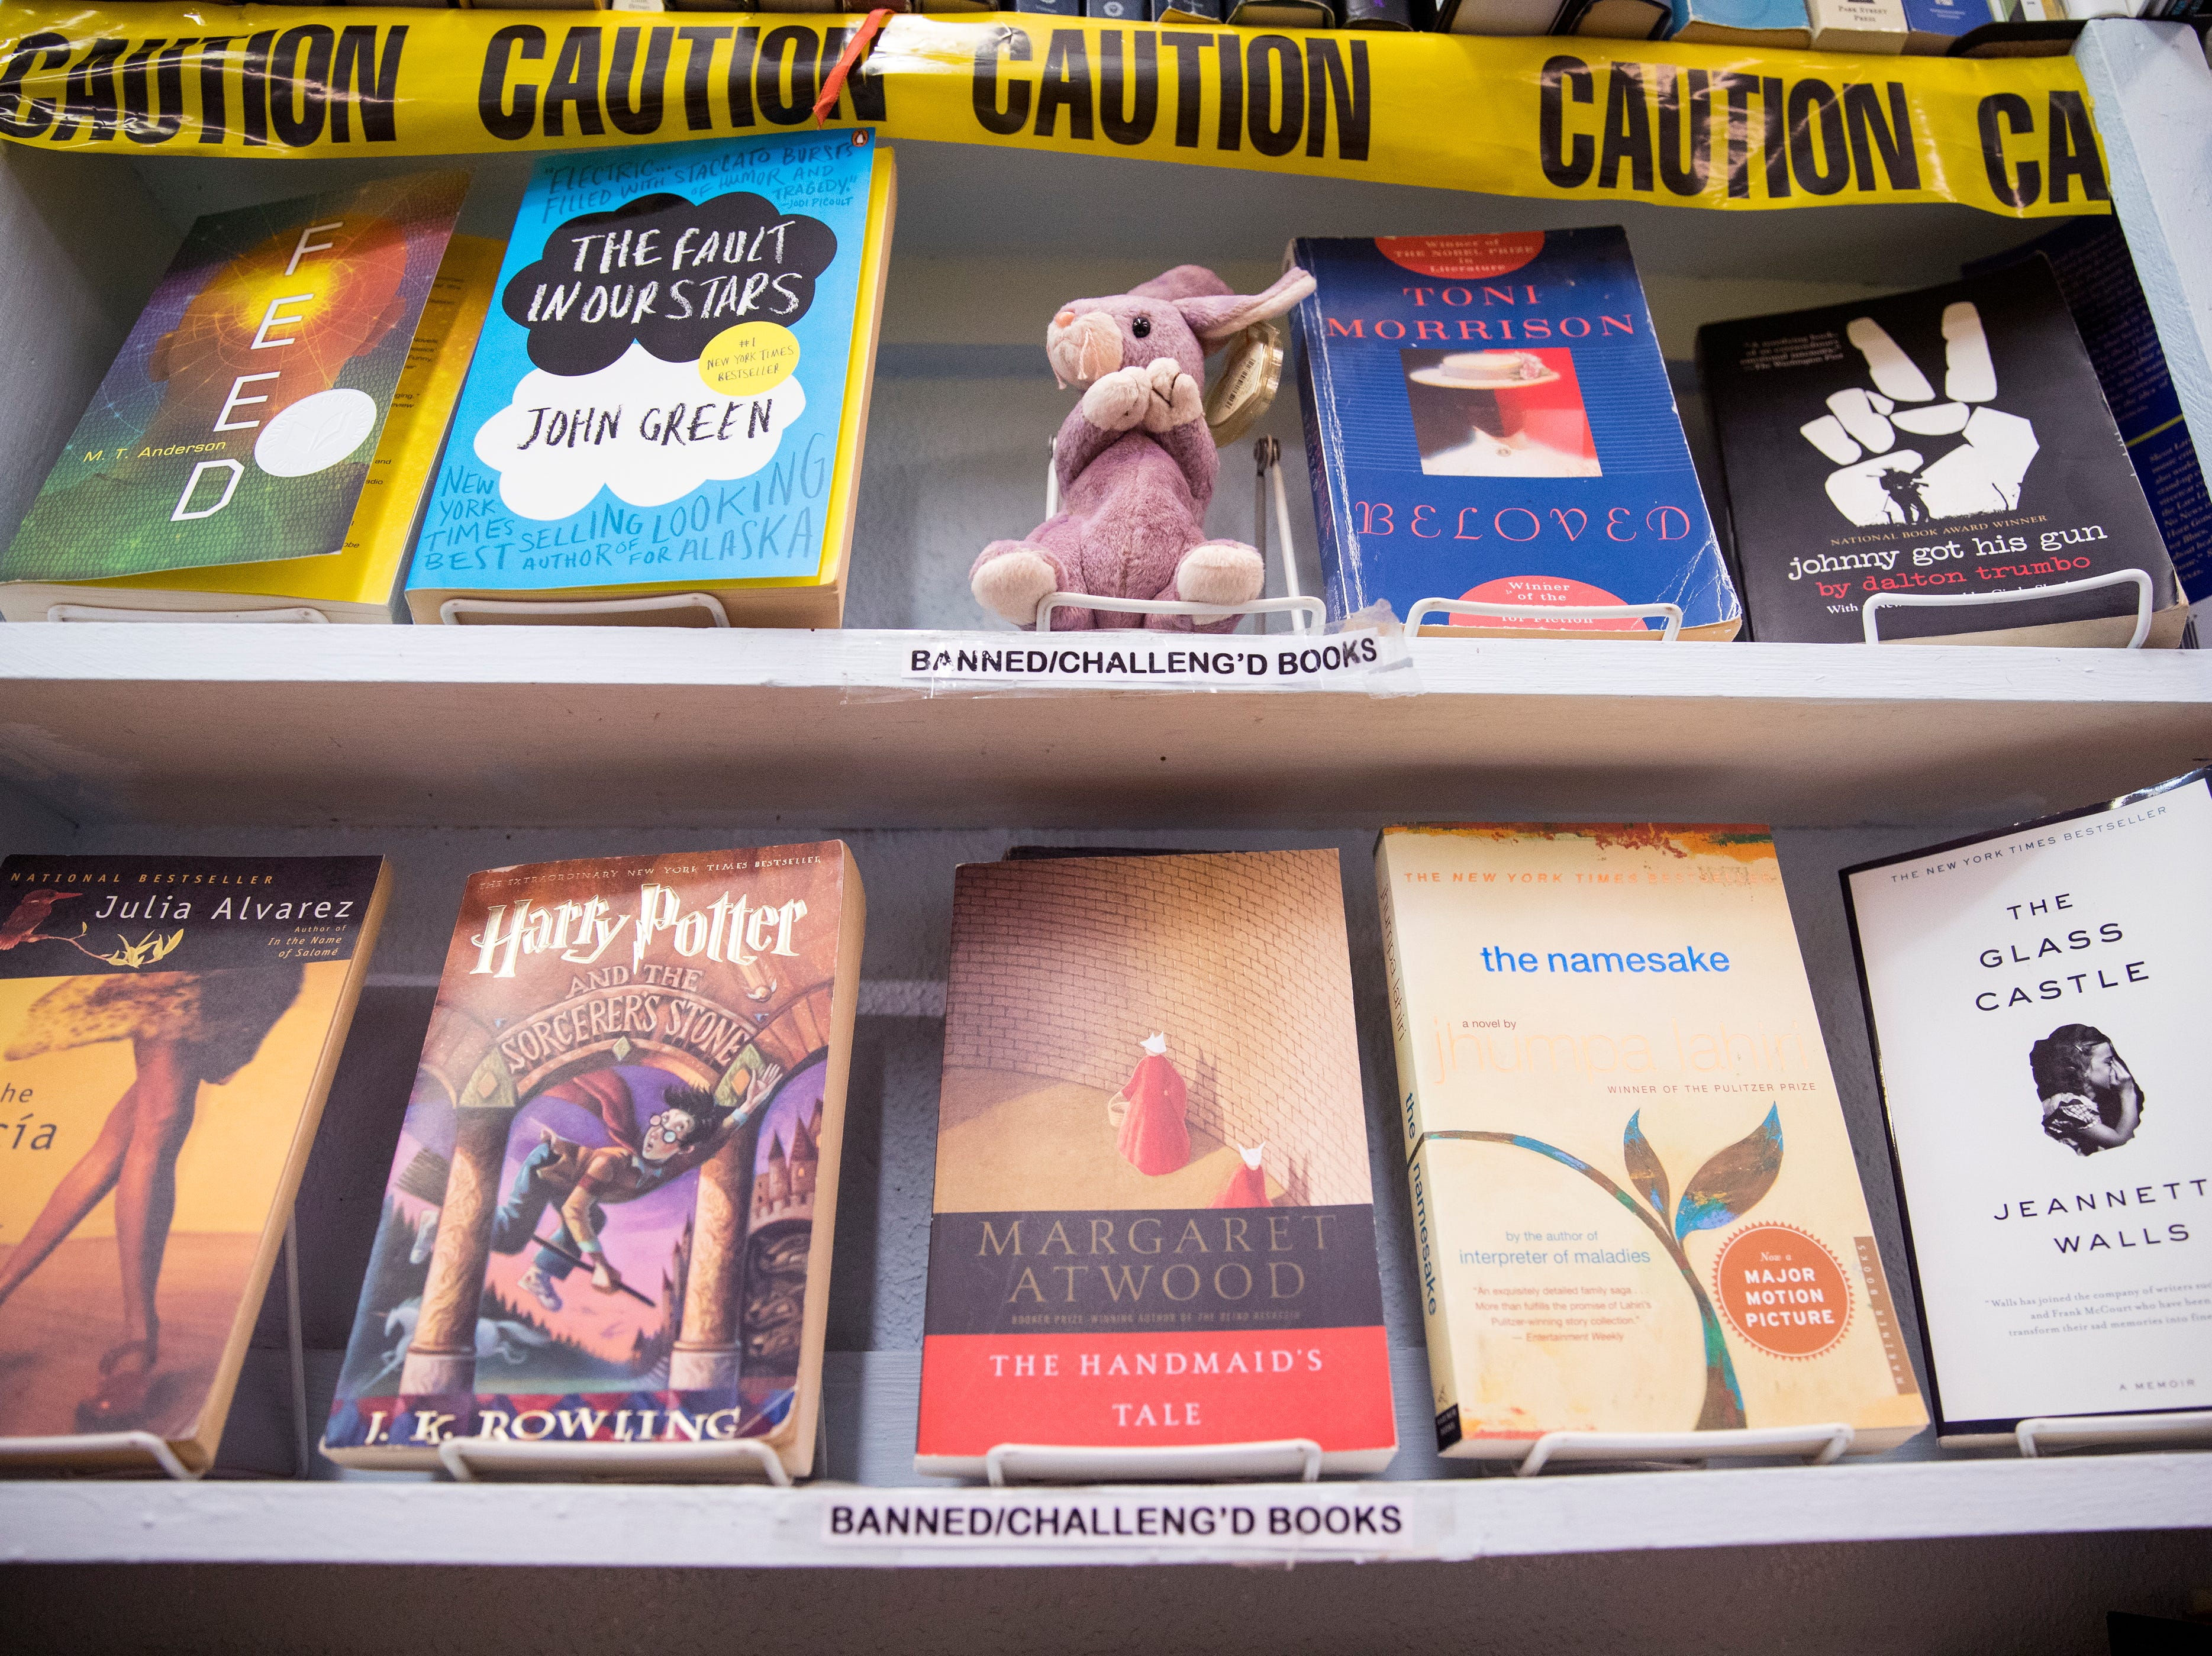 Jennifer Hay, owner of Books Ink, has a special section in her used bookstore for books that have been banned, or are currently banned. They are popular sellers, she said.